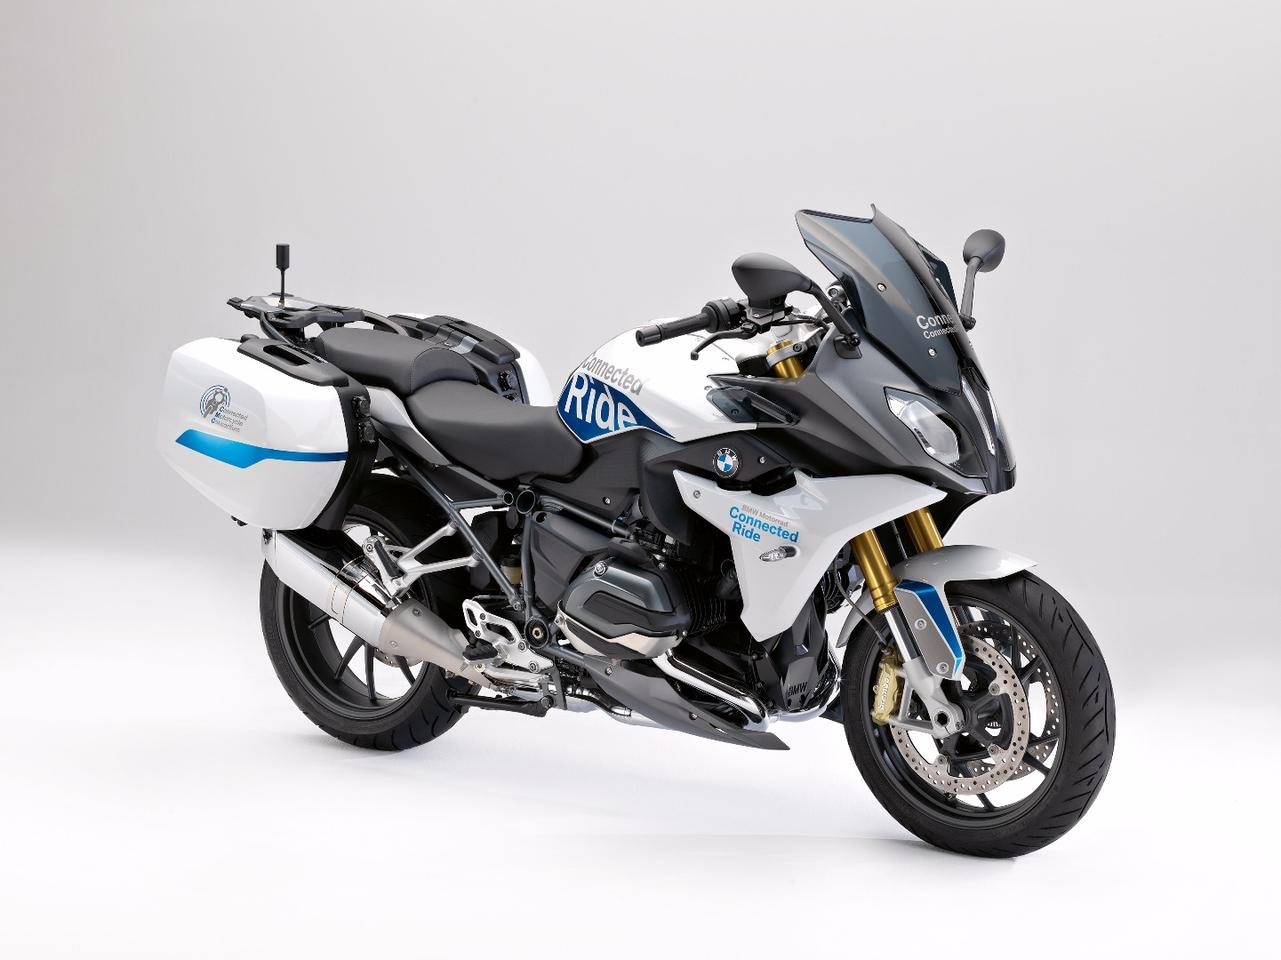 The BMW R1200RS ConnectedRide is a prototype designed for future Cooperative Intelligent Transportation Systems